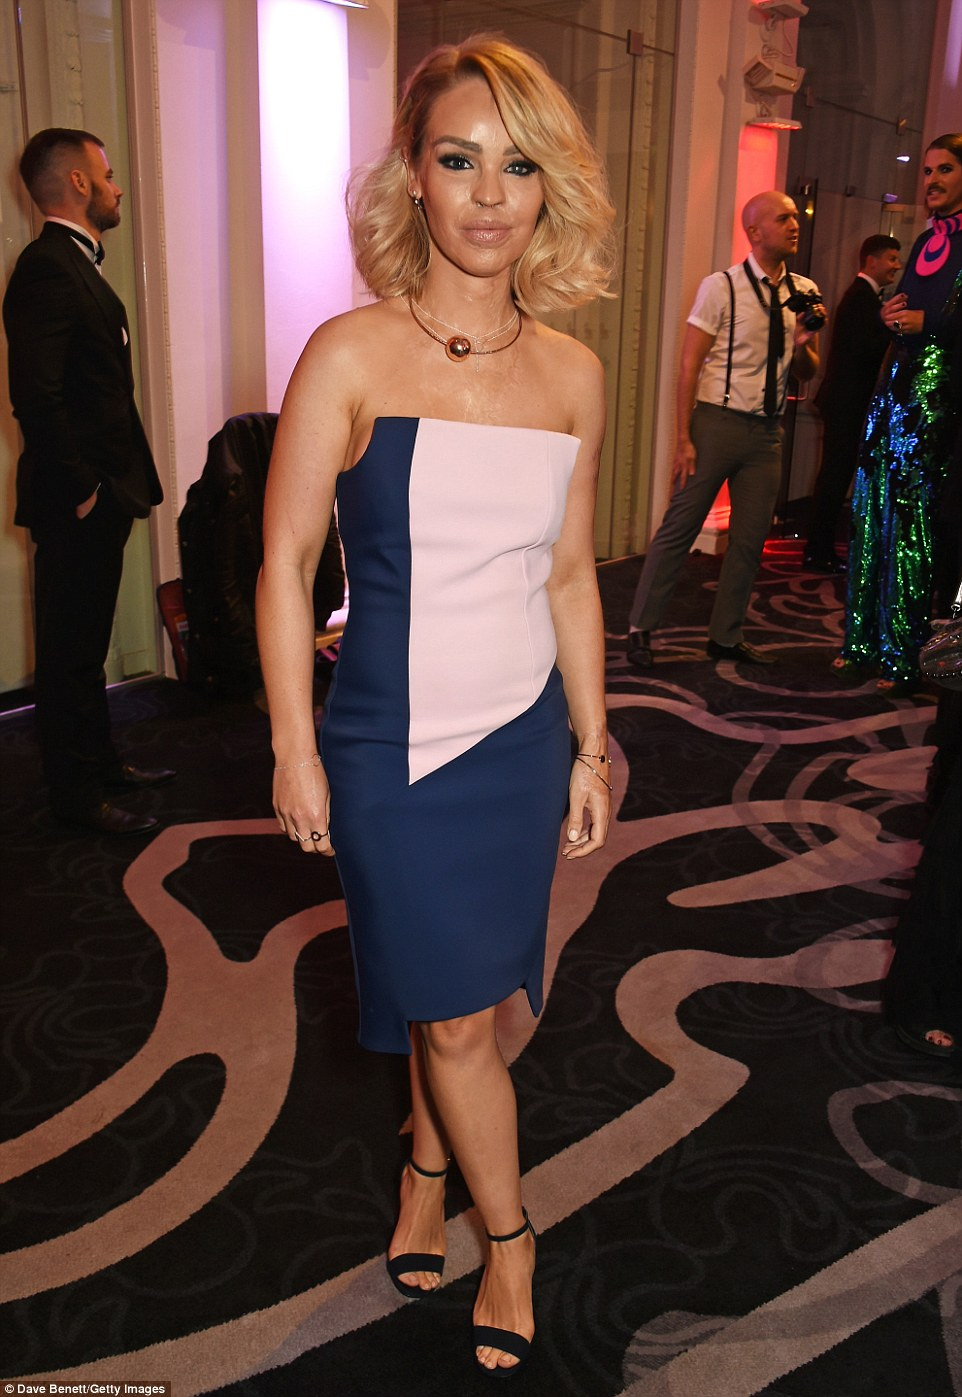 Chic: TV personality Katie Piper wowed in a structured blue and pink dress with a strapless top while she paired the look with a bold ball necklace and thin strap black heels. She was joined by her handsome husband James Sutton